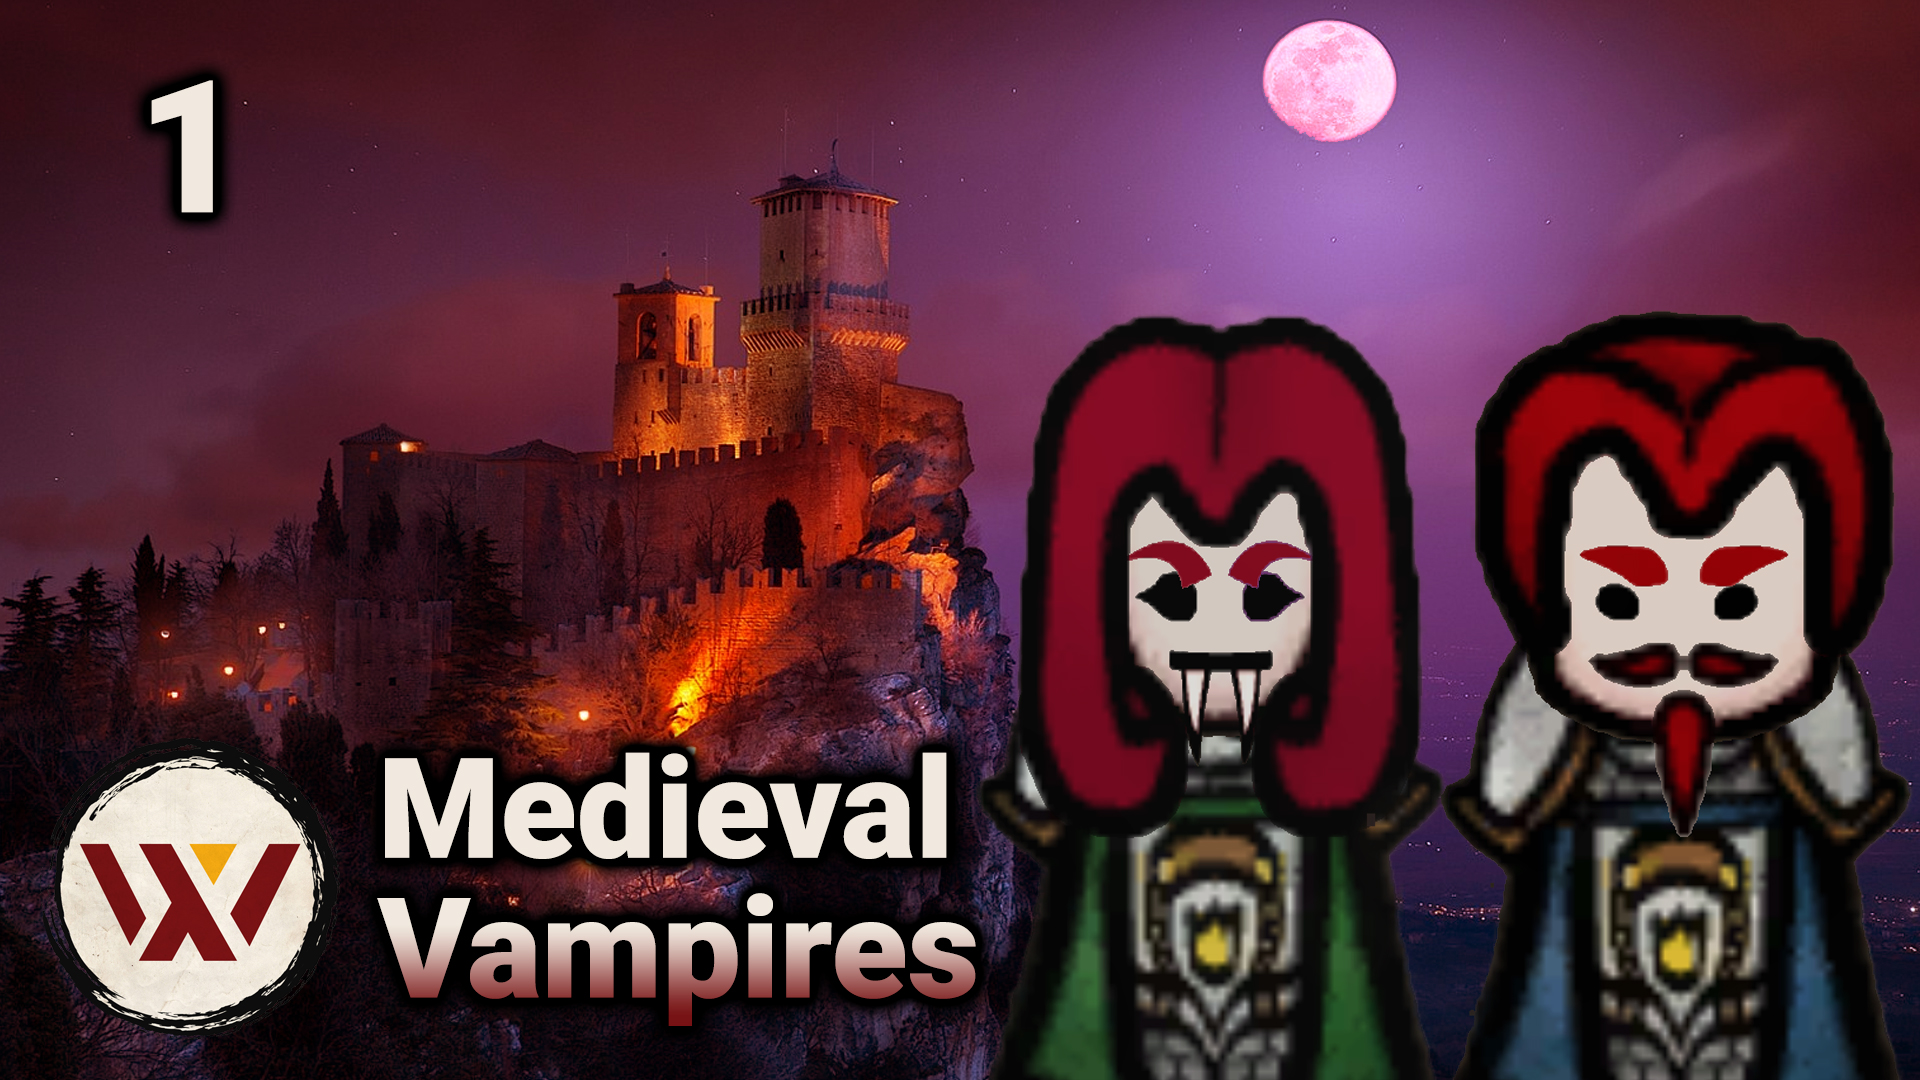 Steam Workshop :: xwynns' Medieval Vampires B18 Mod Pack